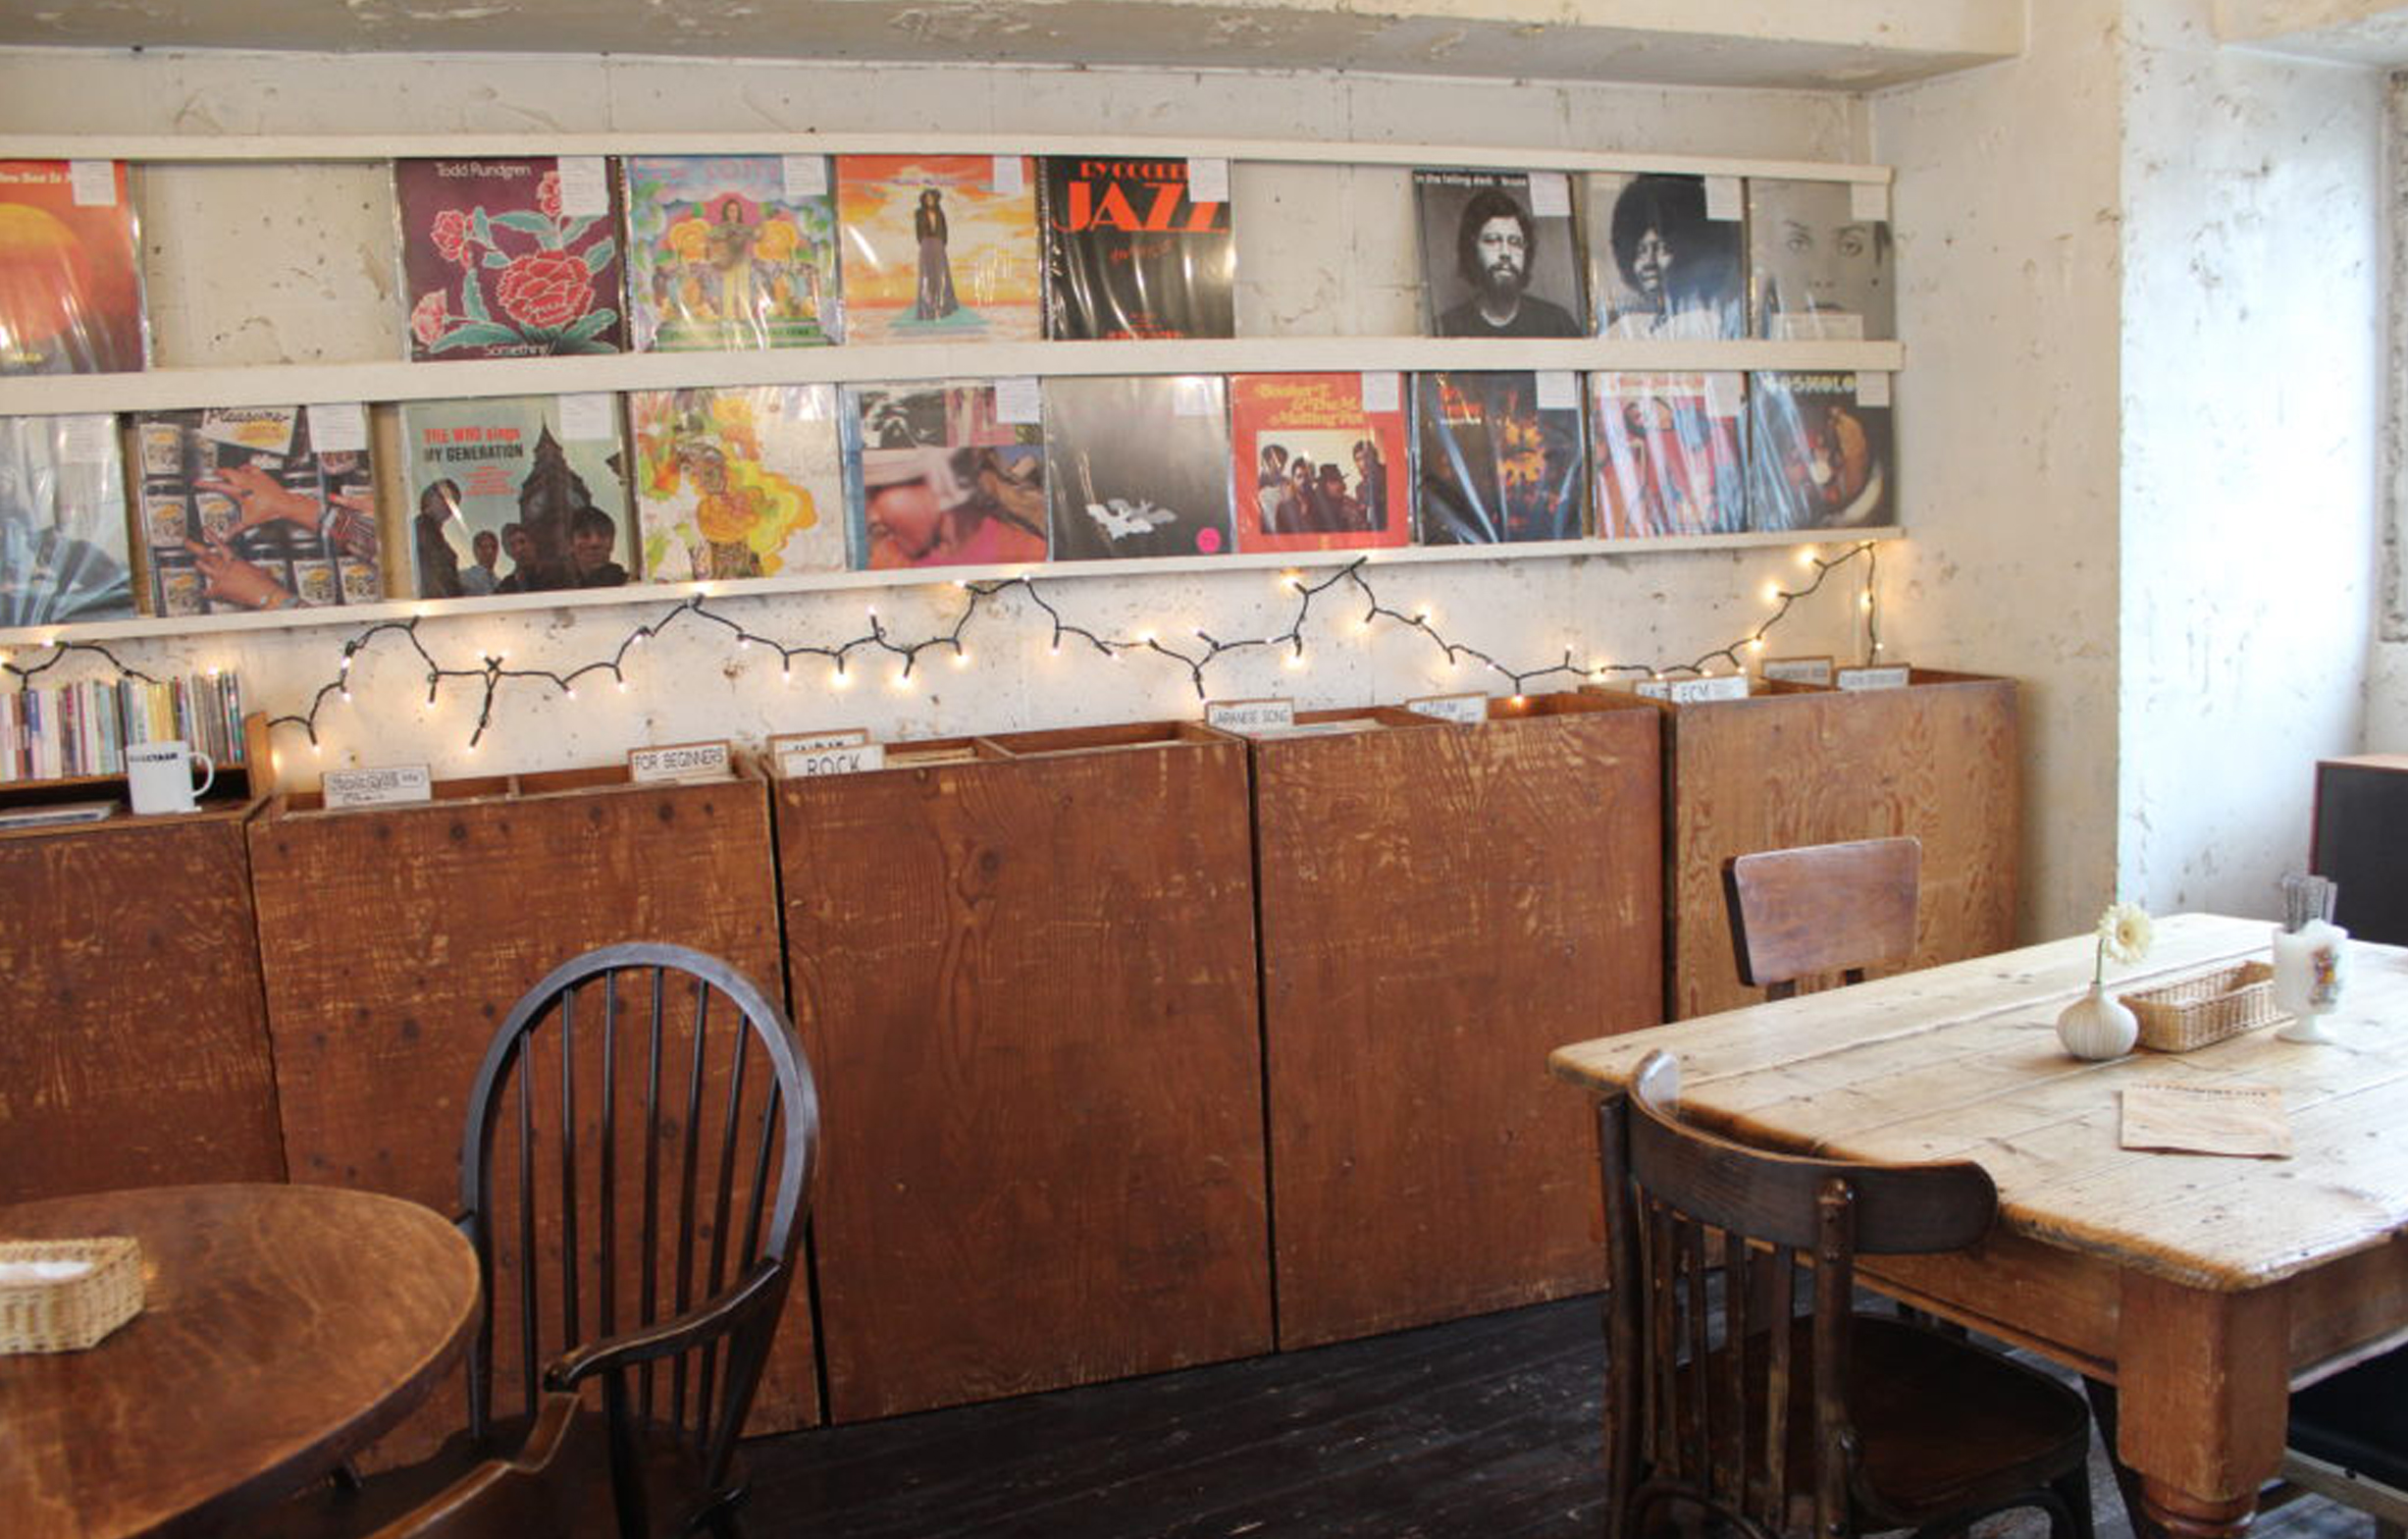 City Country City record store and cafe vinyl on display and tables and chairs Tokyo